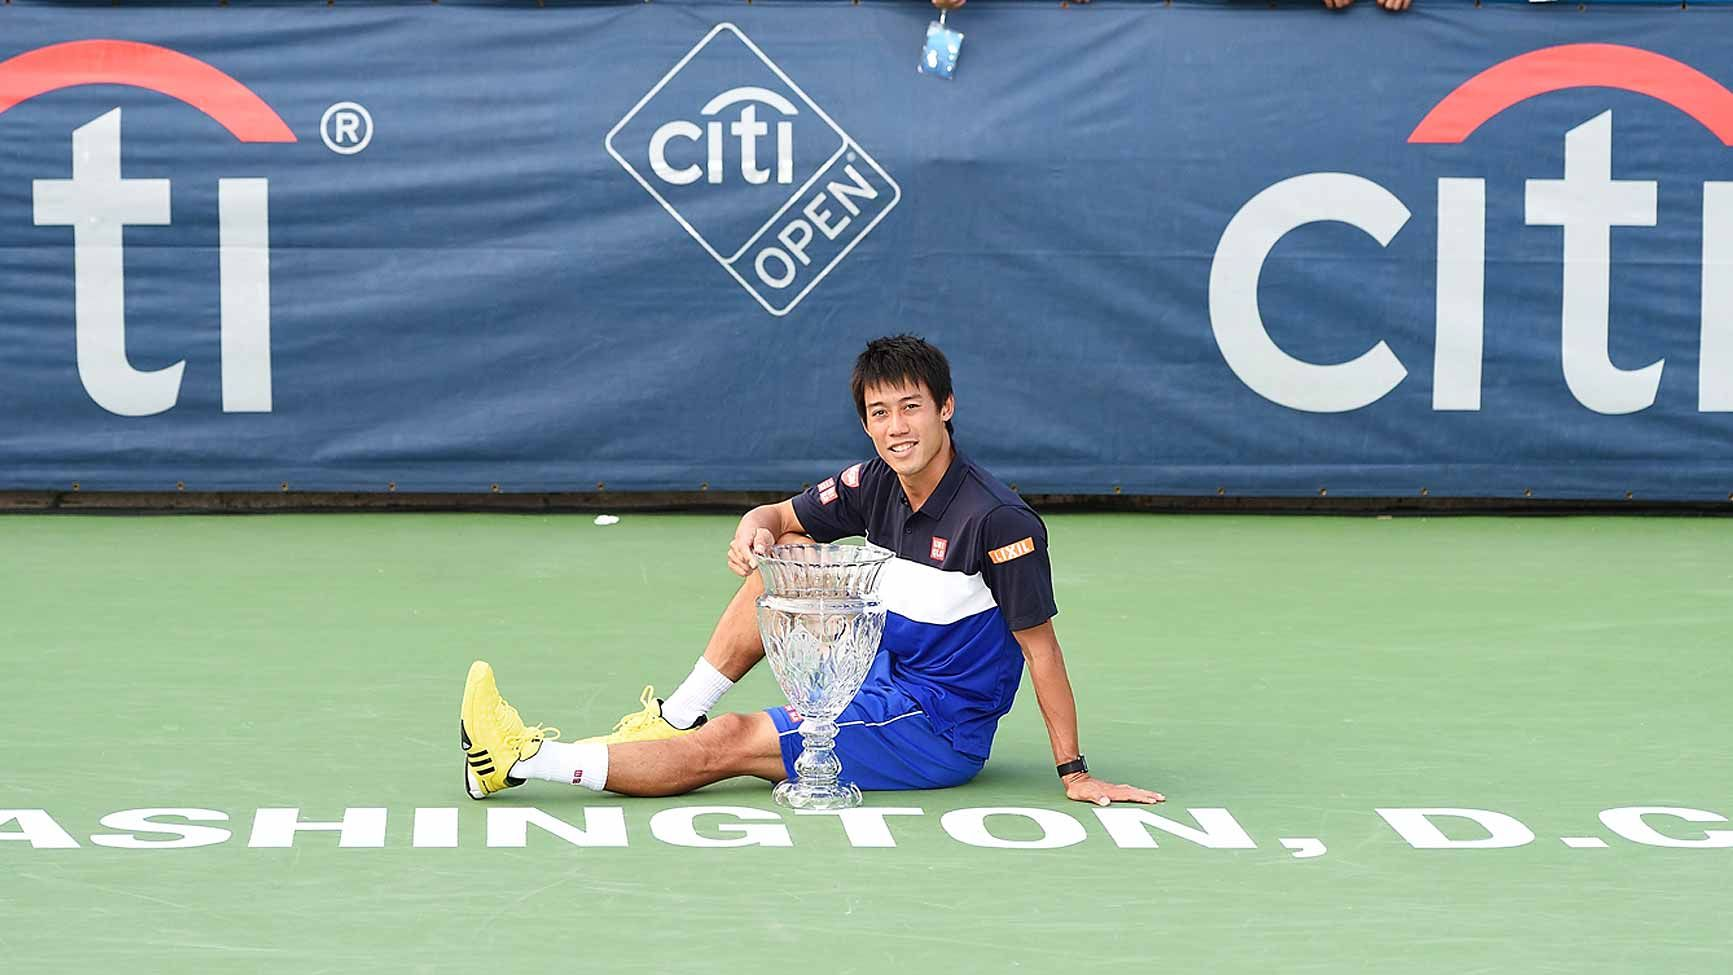 ATP World Tour Washington 2015